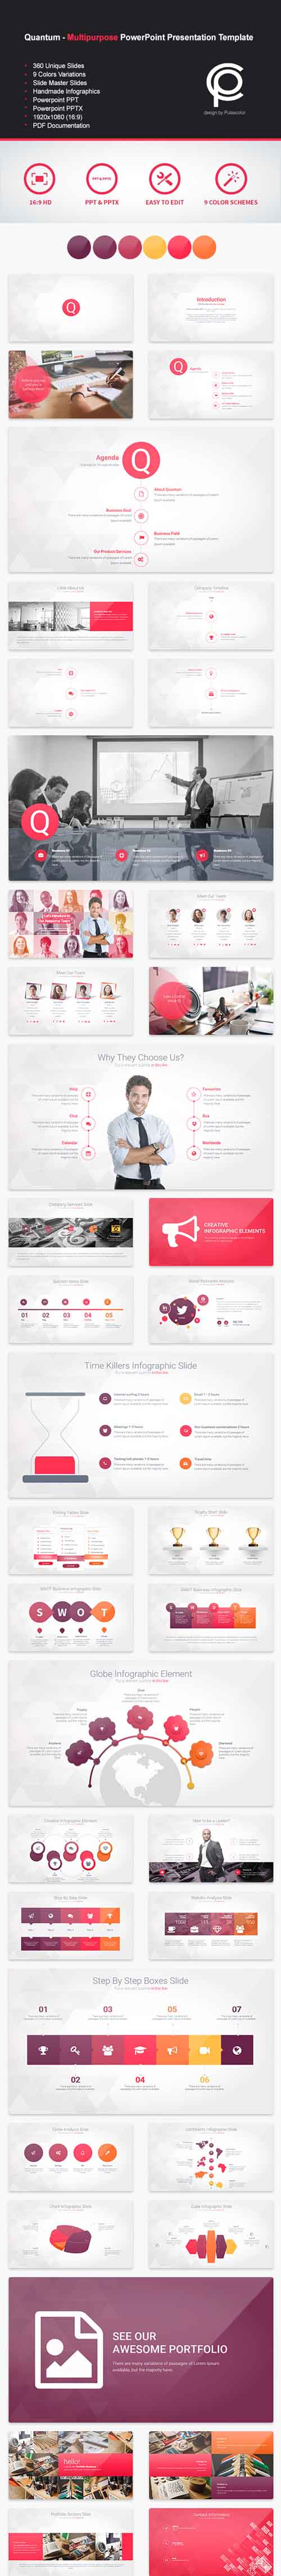 Quantum - Multipurpose PowerPoint Presentation 12469623